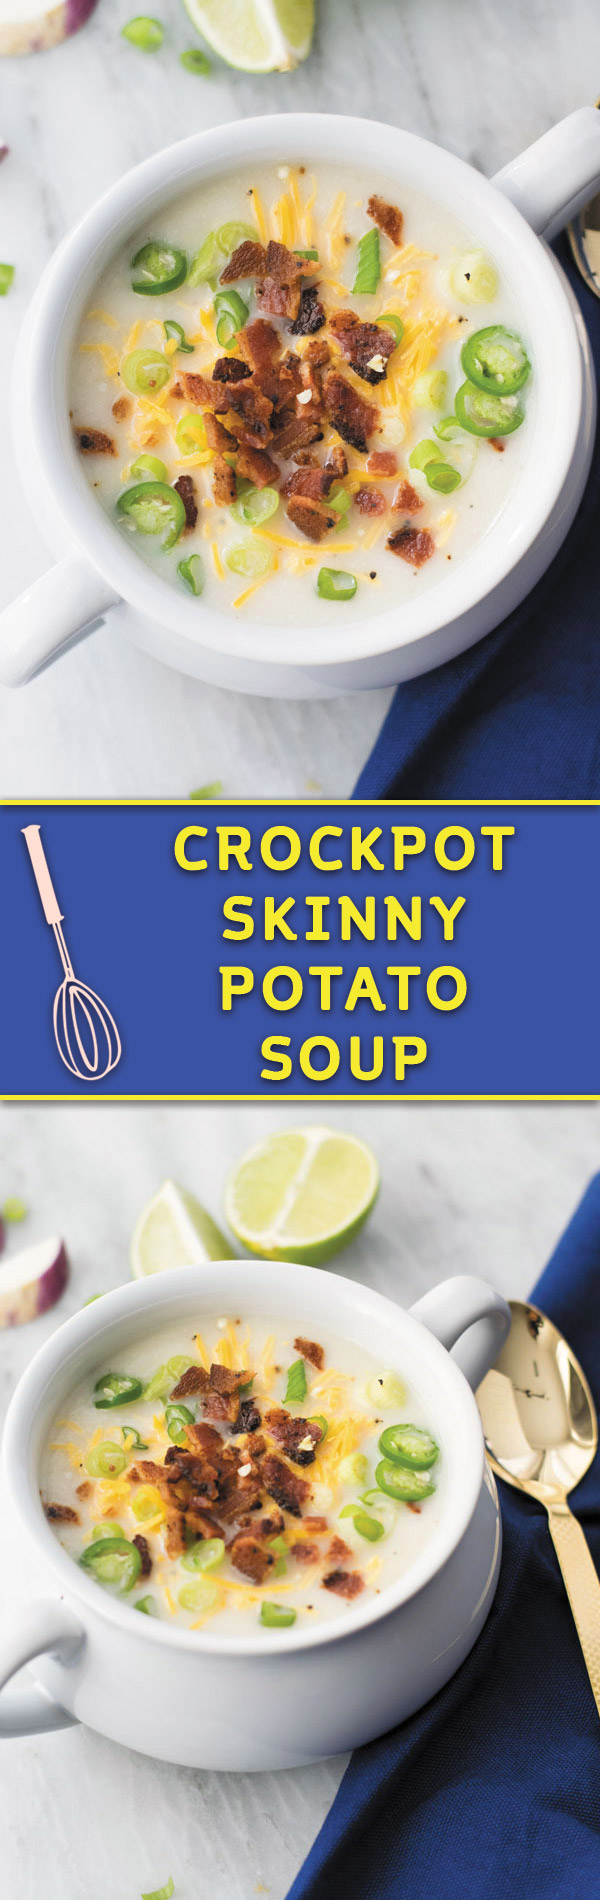 Crockpot skinny potato soup - Comforting CROCKPOT soup, lightened version of POTATO SOUP, mixed with cauliflower which even picky eater's can't tell! Perfect for an easy quick meal!